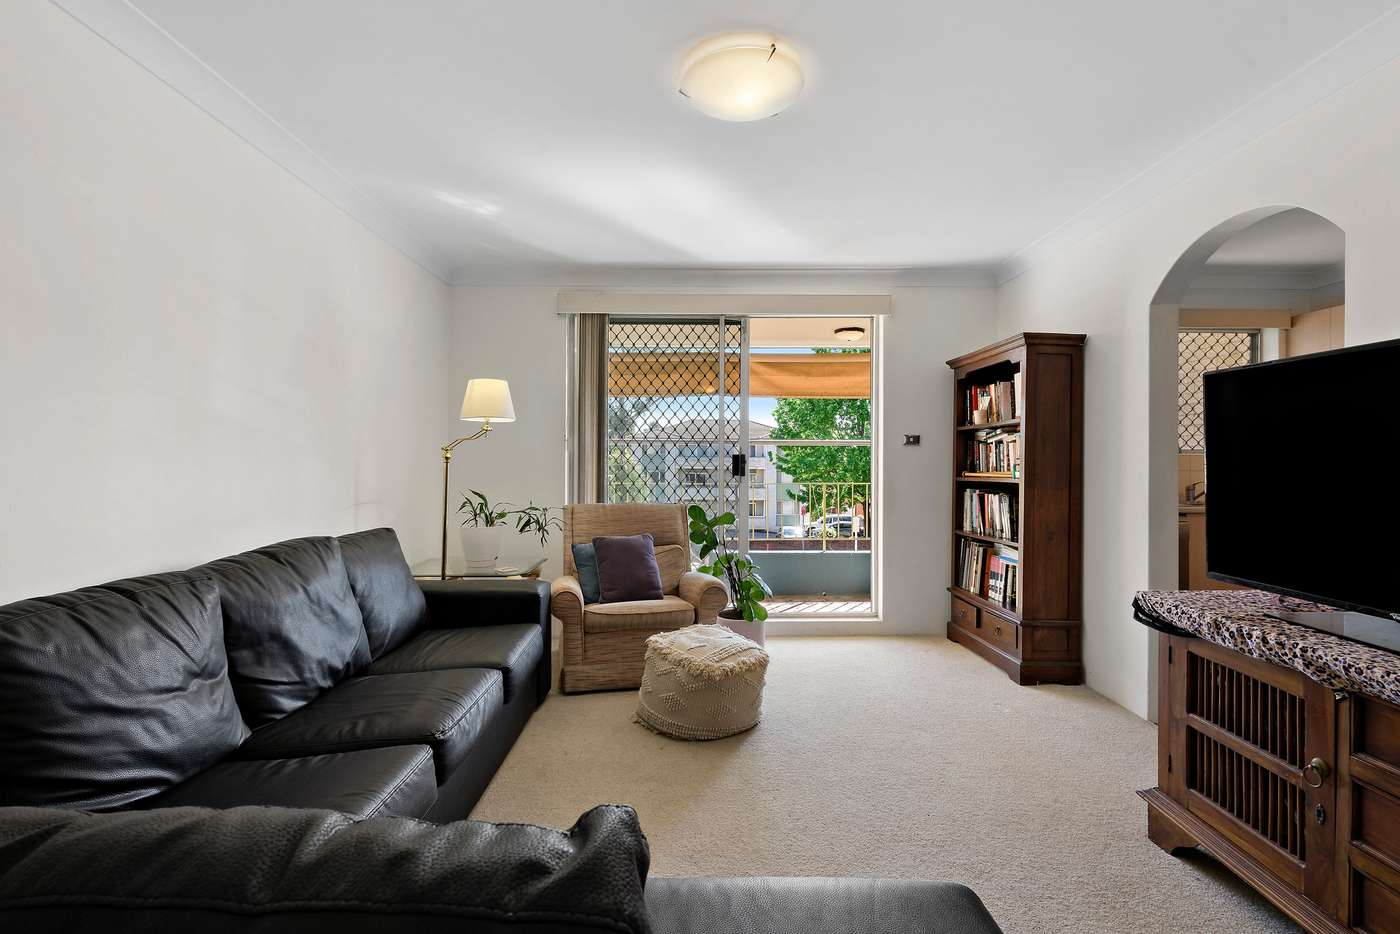 Fifth view of Homely apartment listing, 2/94 O'Connell Street, North Parramatta NSW 2151